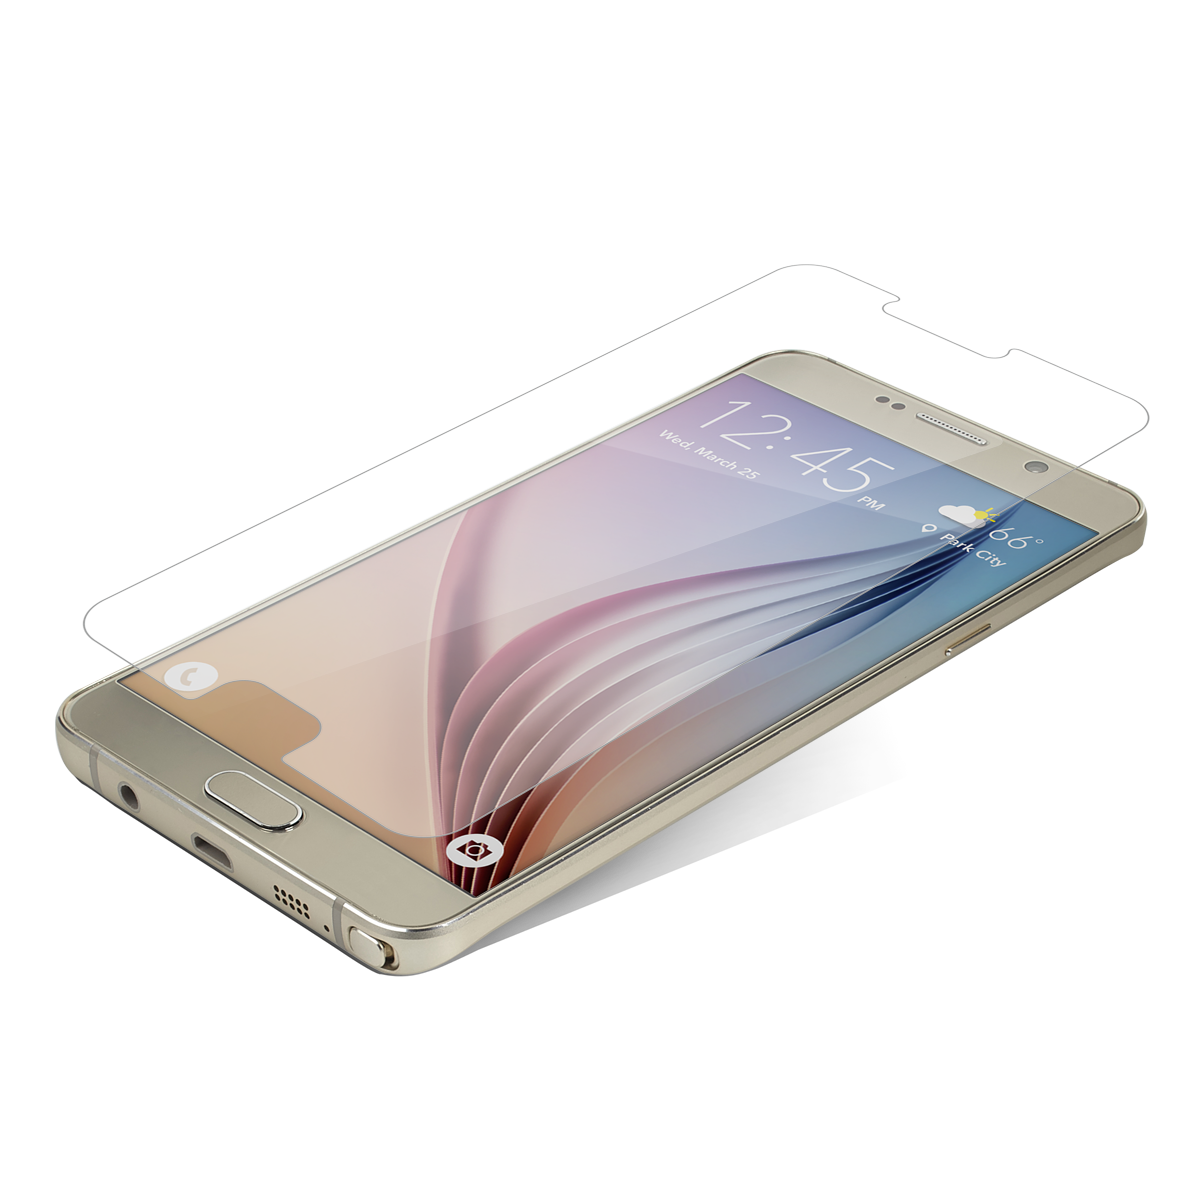 InvisibleShield Glass for the Samsung Galaxy Note 5